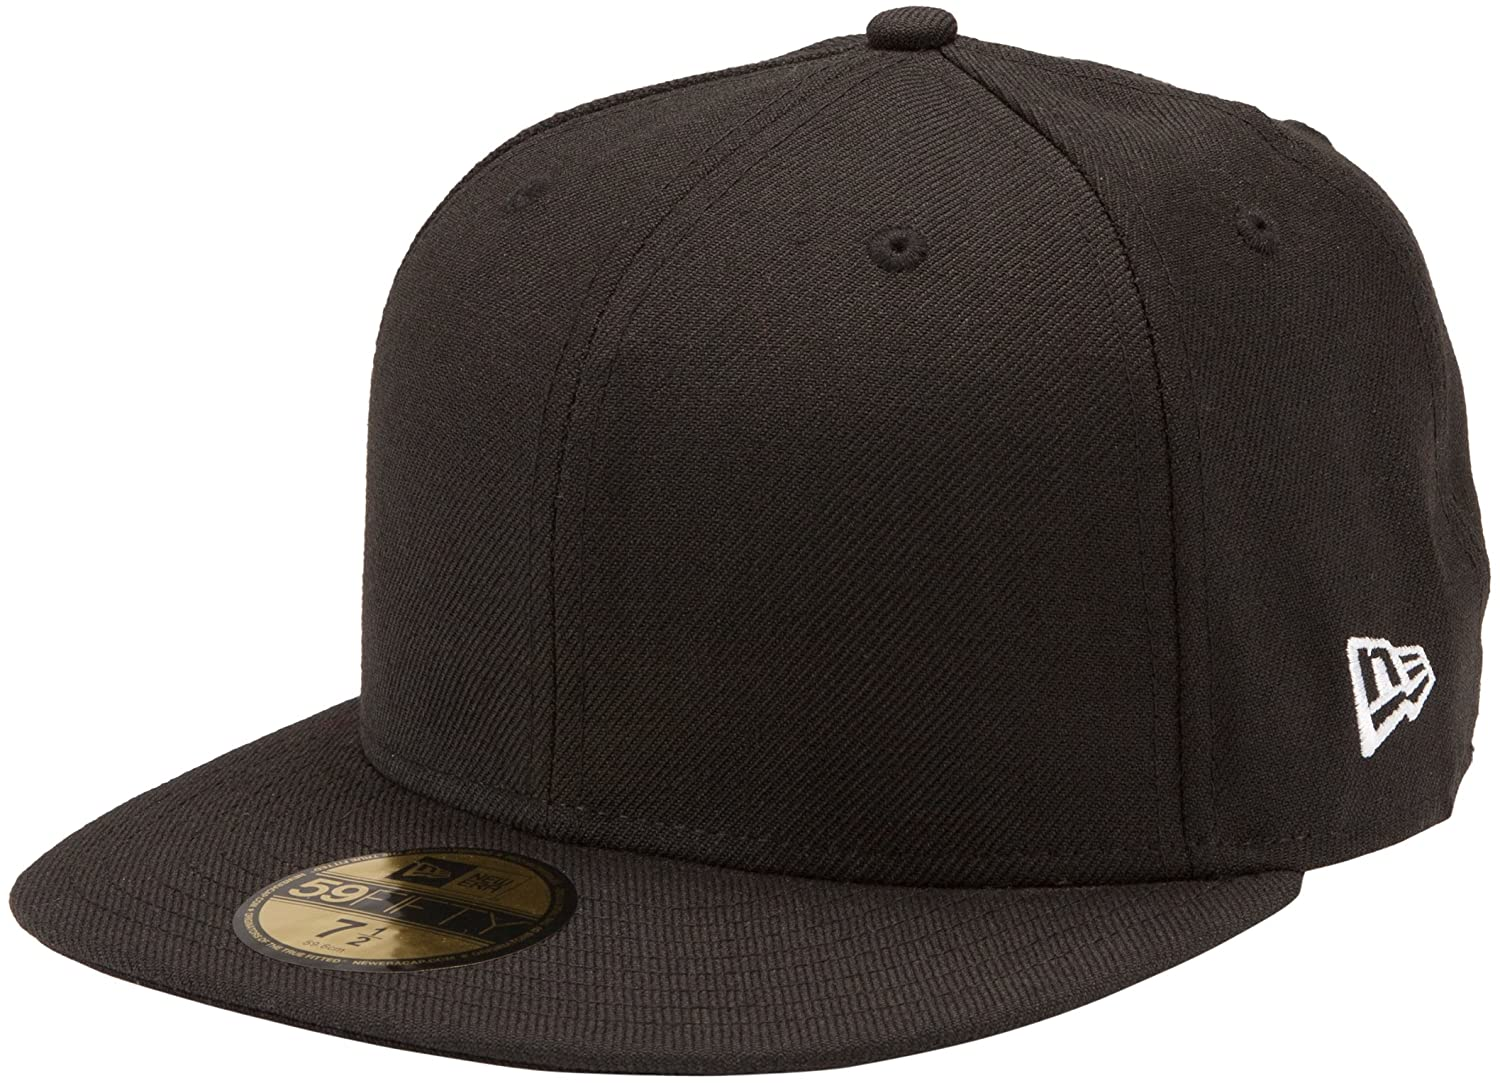 8e0dce89b55 Amazon.com   New Era Original Basic Black 59Fifty Hat